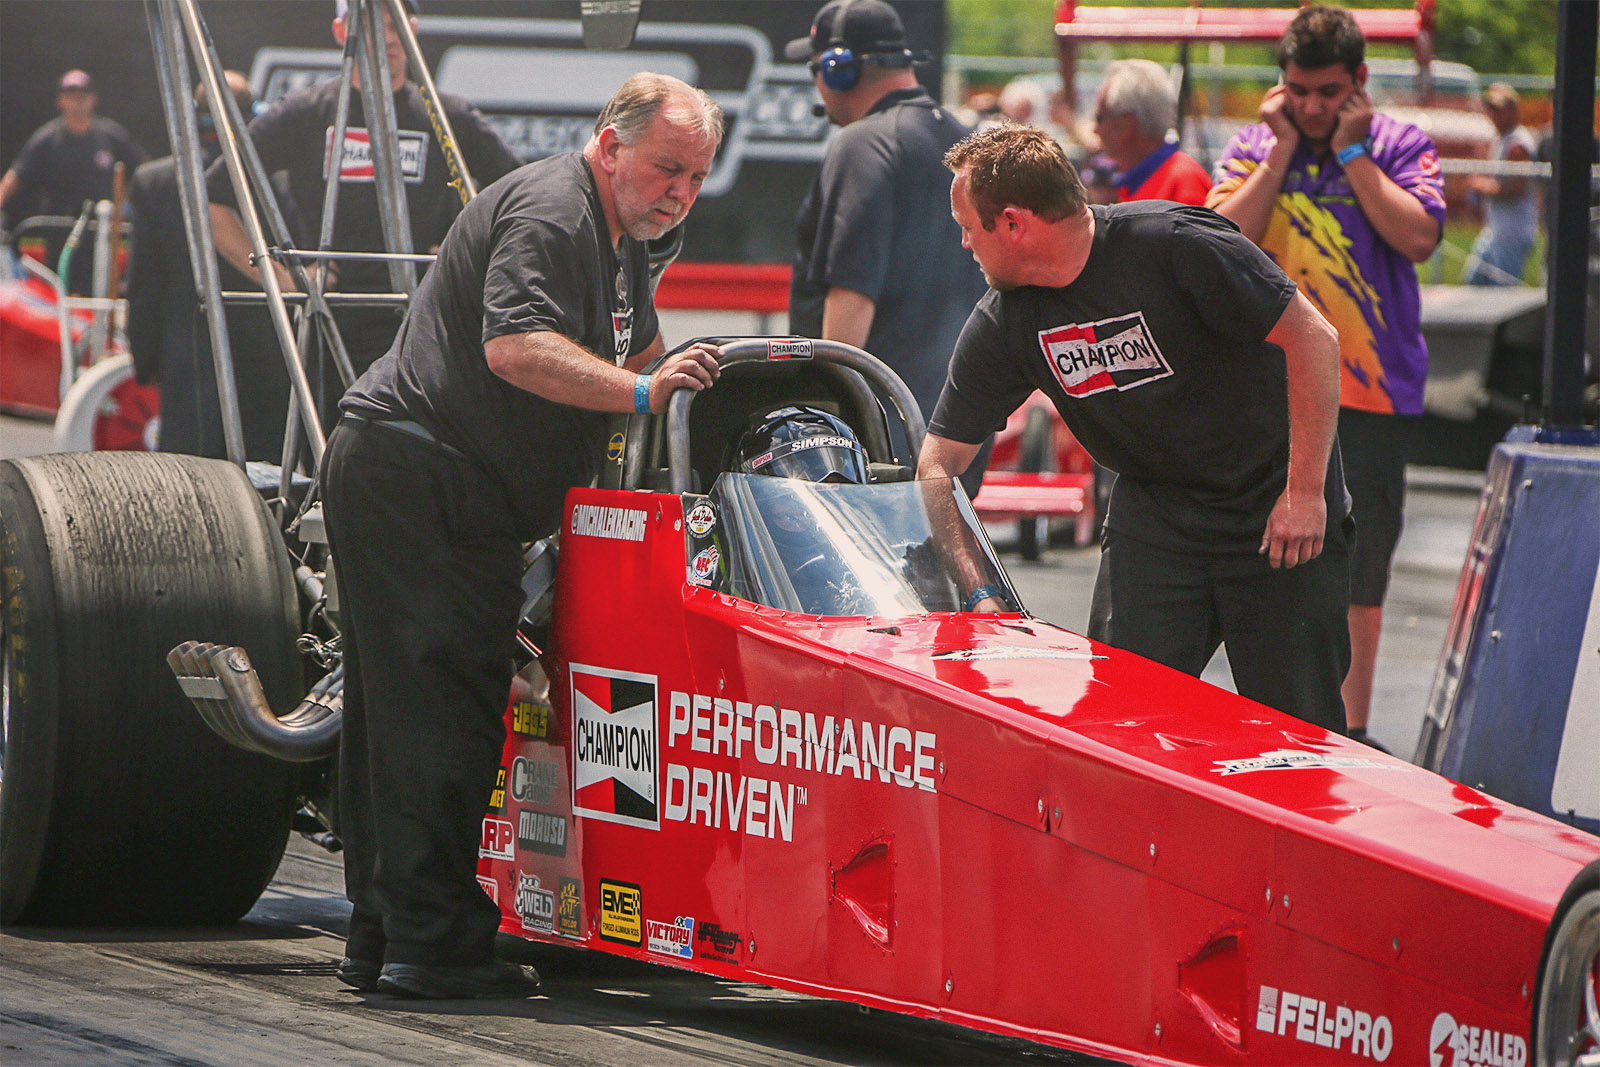 Michalek Brothers Racing will again partner with Randy and Jared Dreher of Dreher Motorsports to field an A/fuel dragster entry within the NHRA Lucas Oil Drag Racing Series.